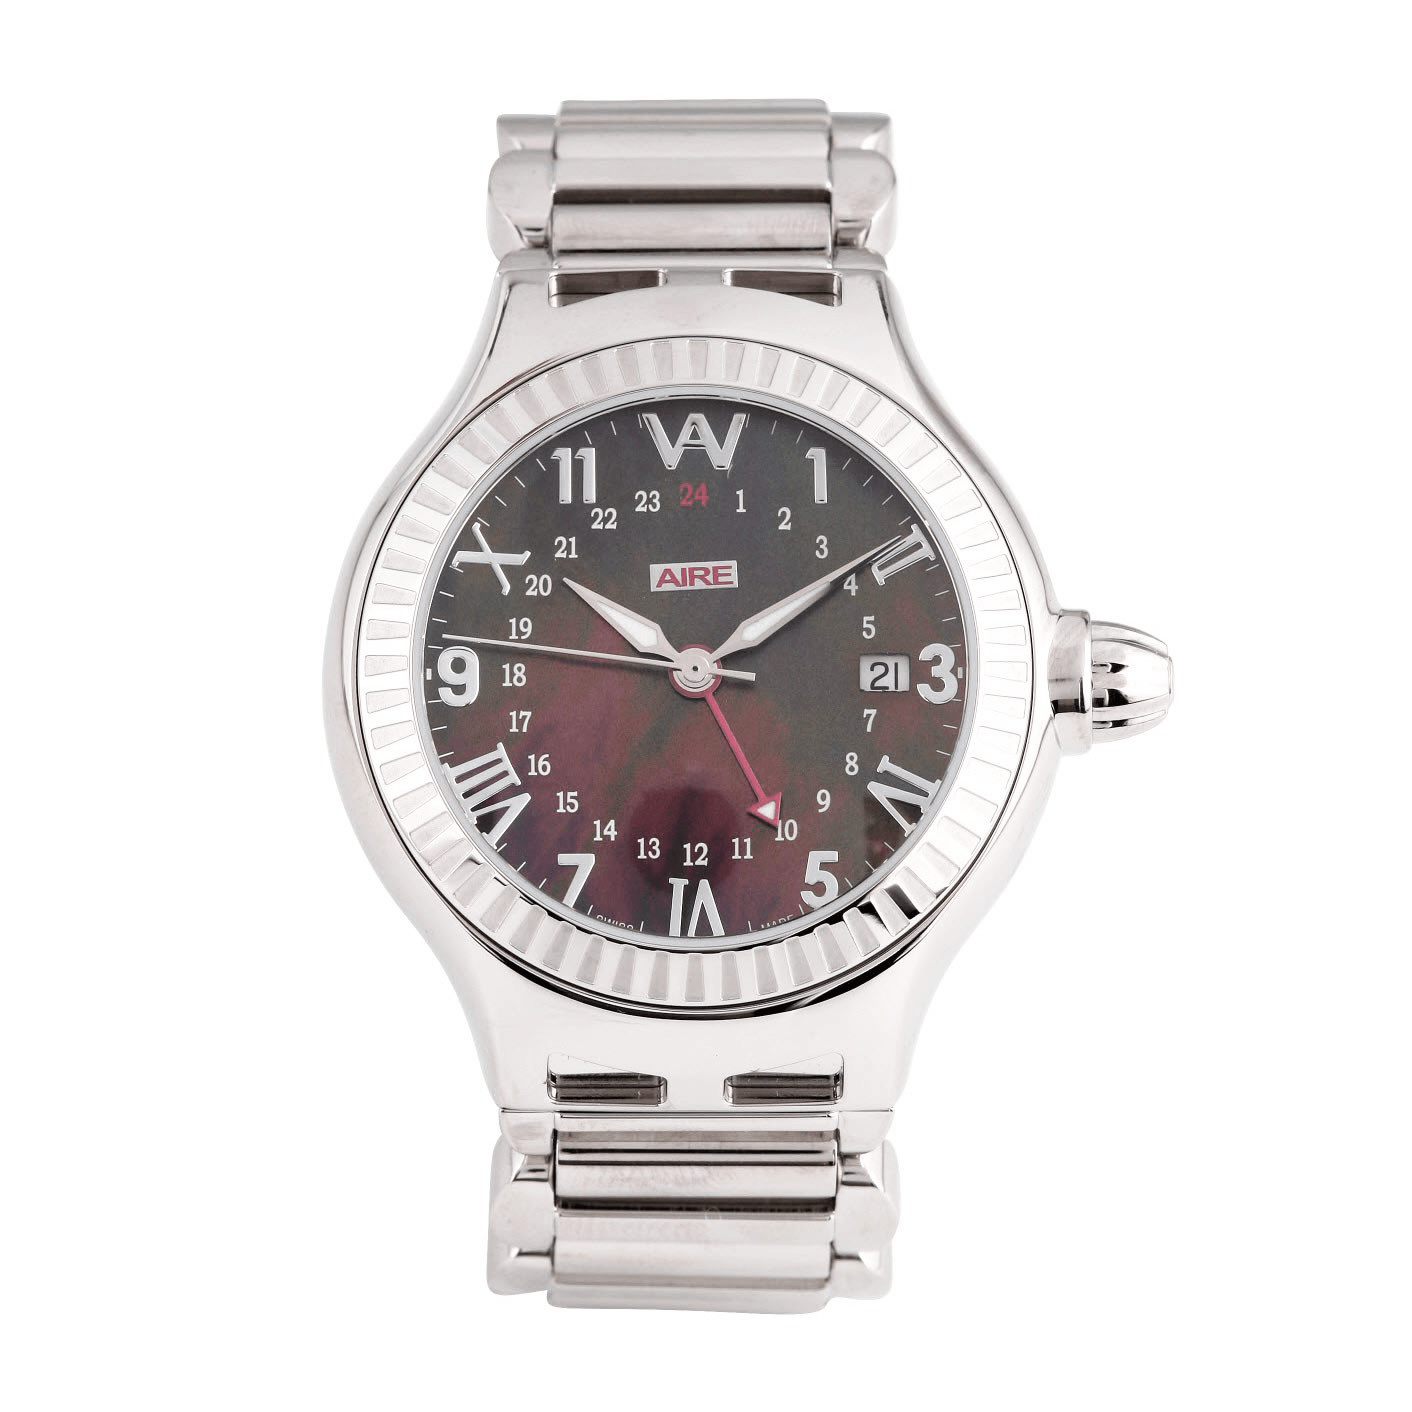 Aire Parlay GMT Swiss Made Automatic Limited Edition Watch